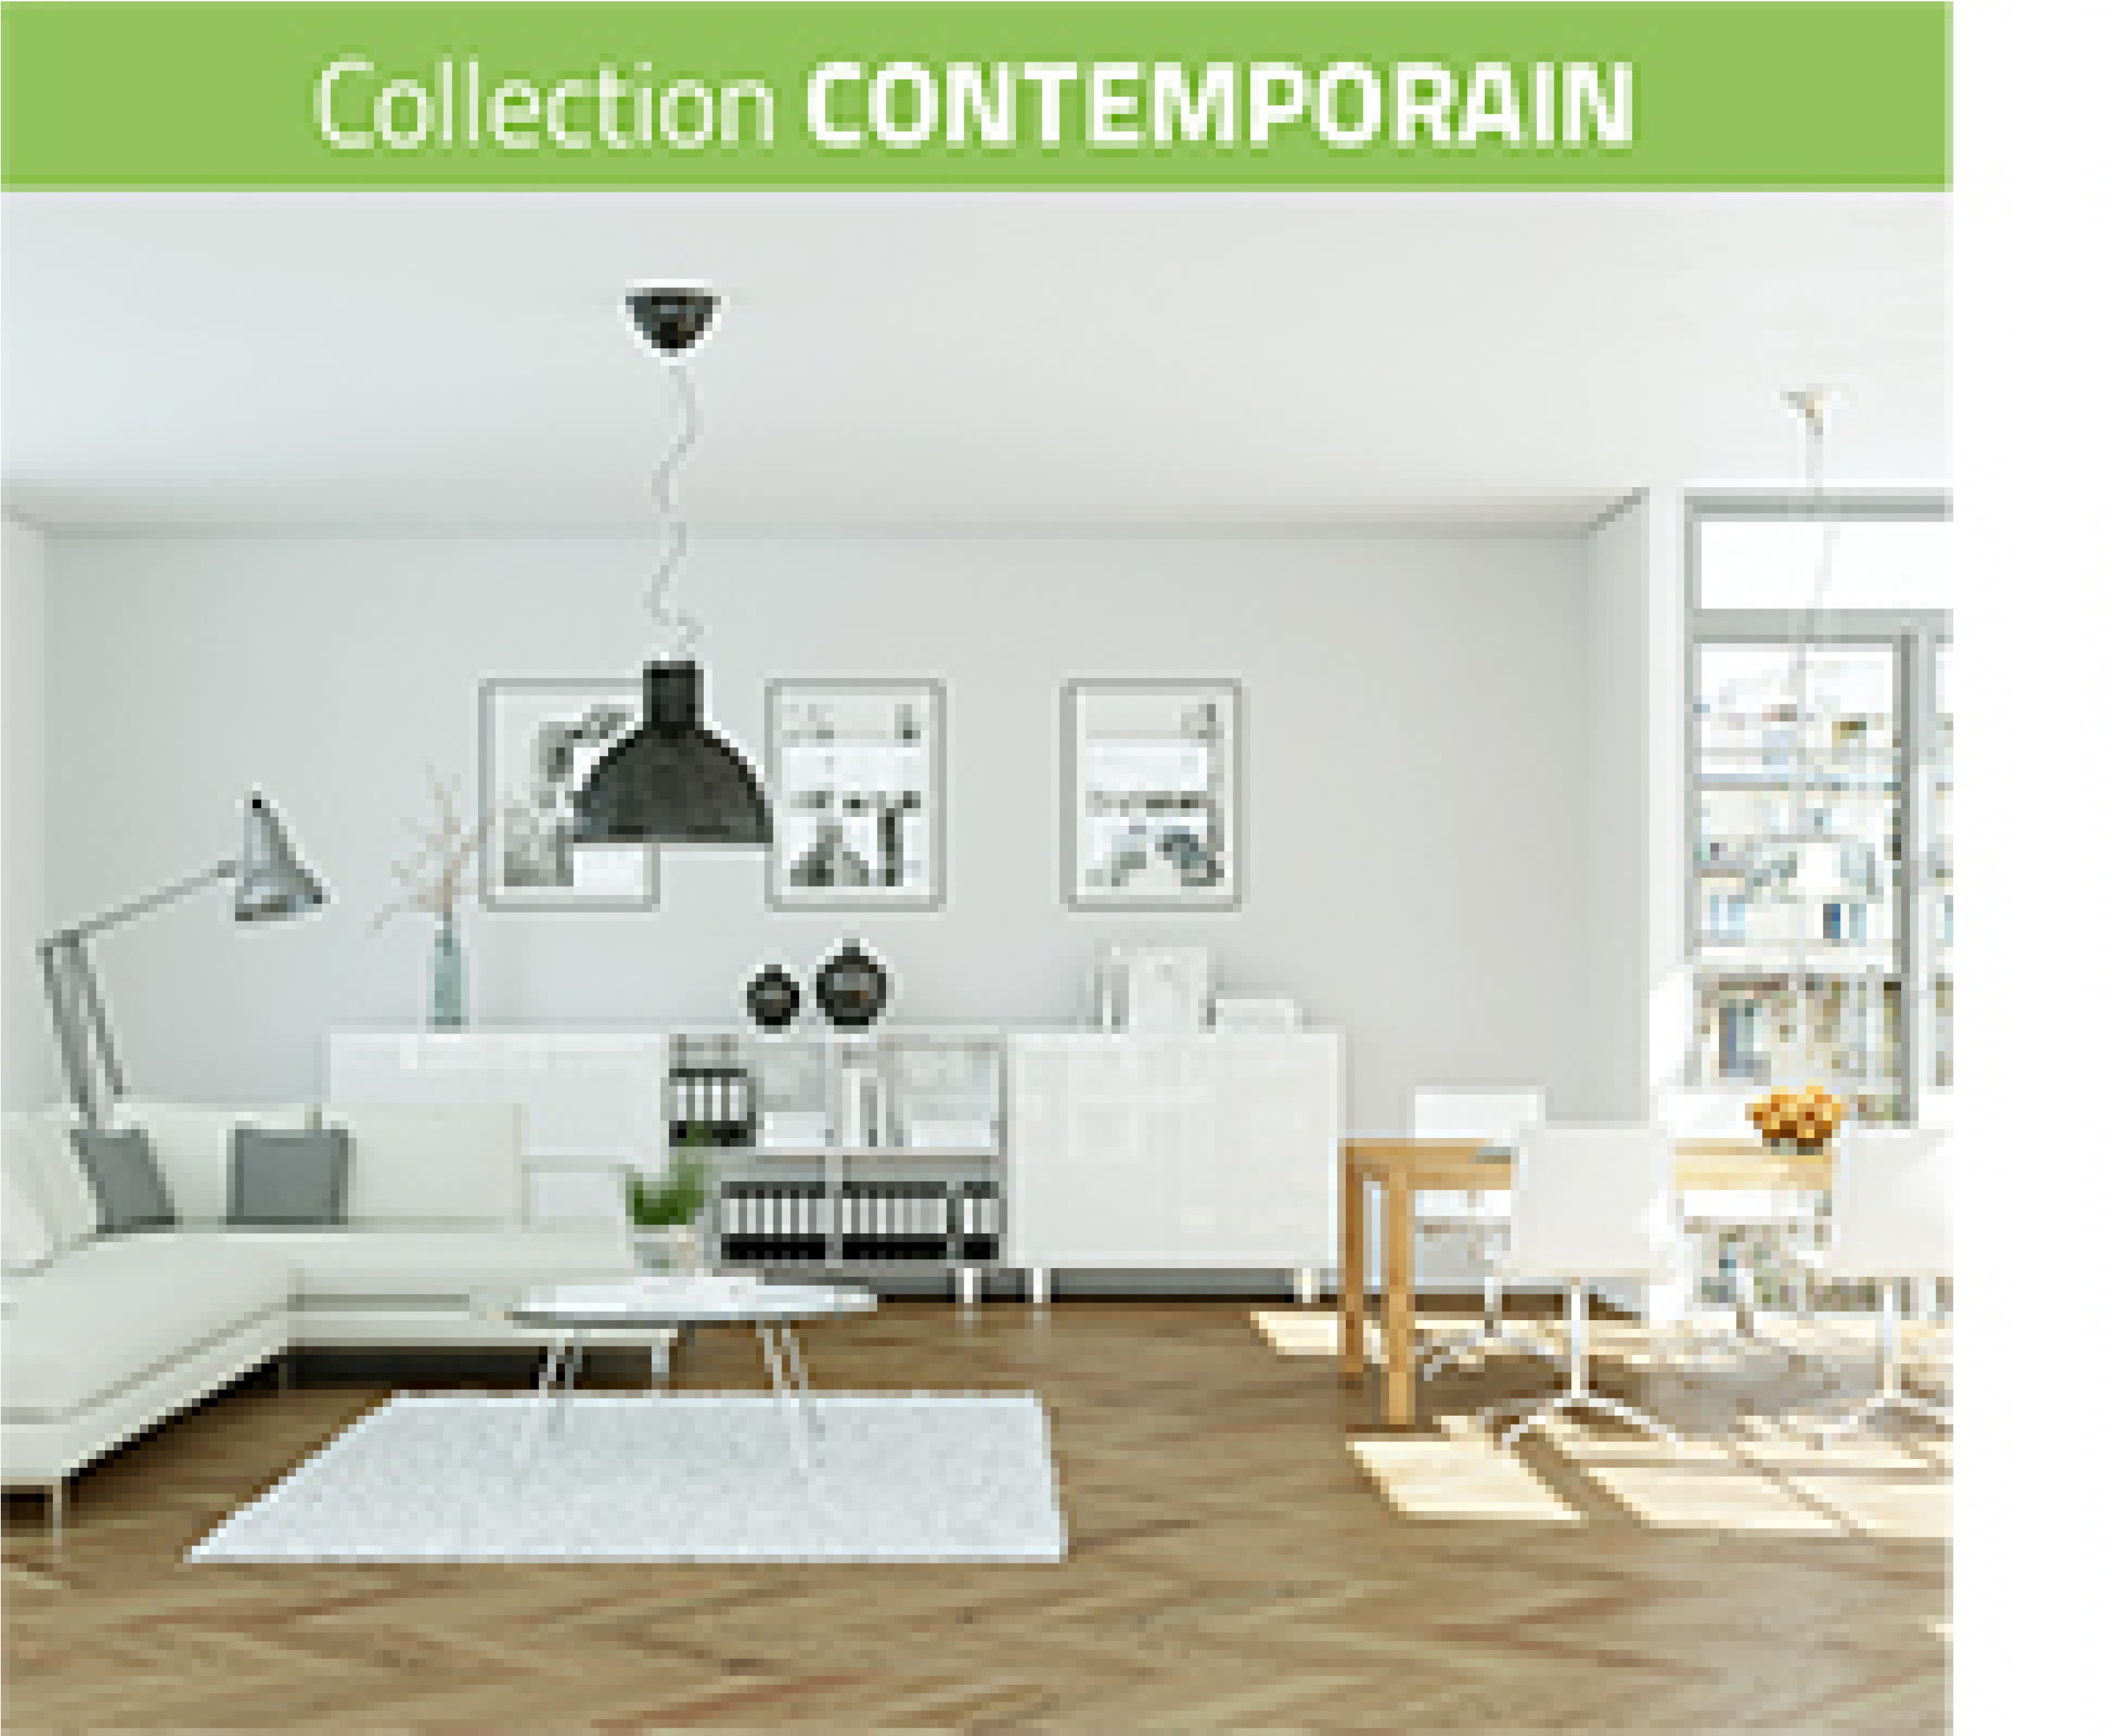 COLLECTION CONTEMPORAIN